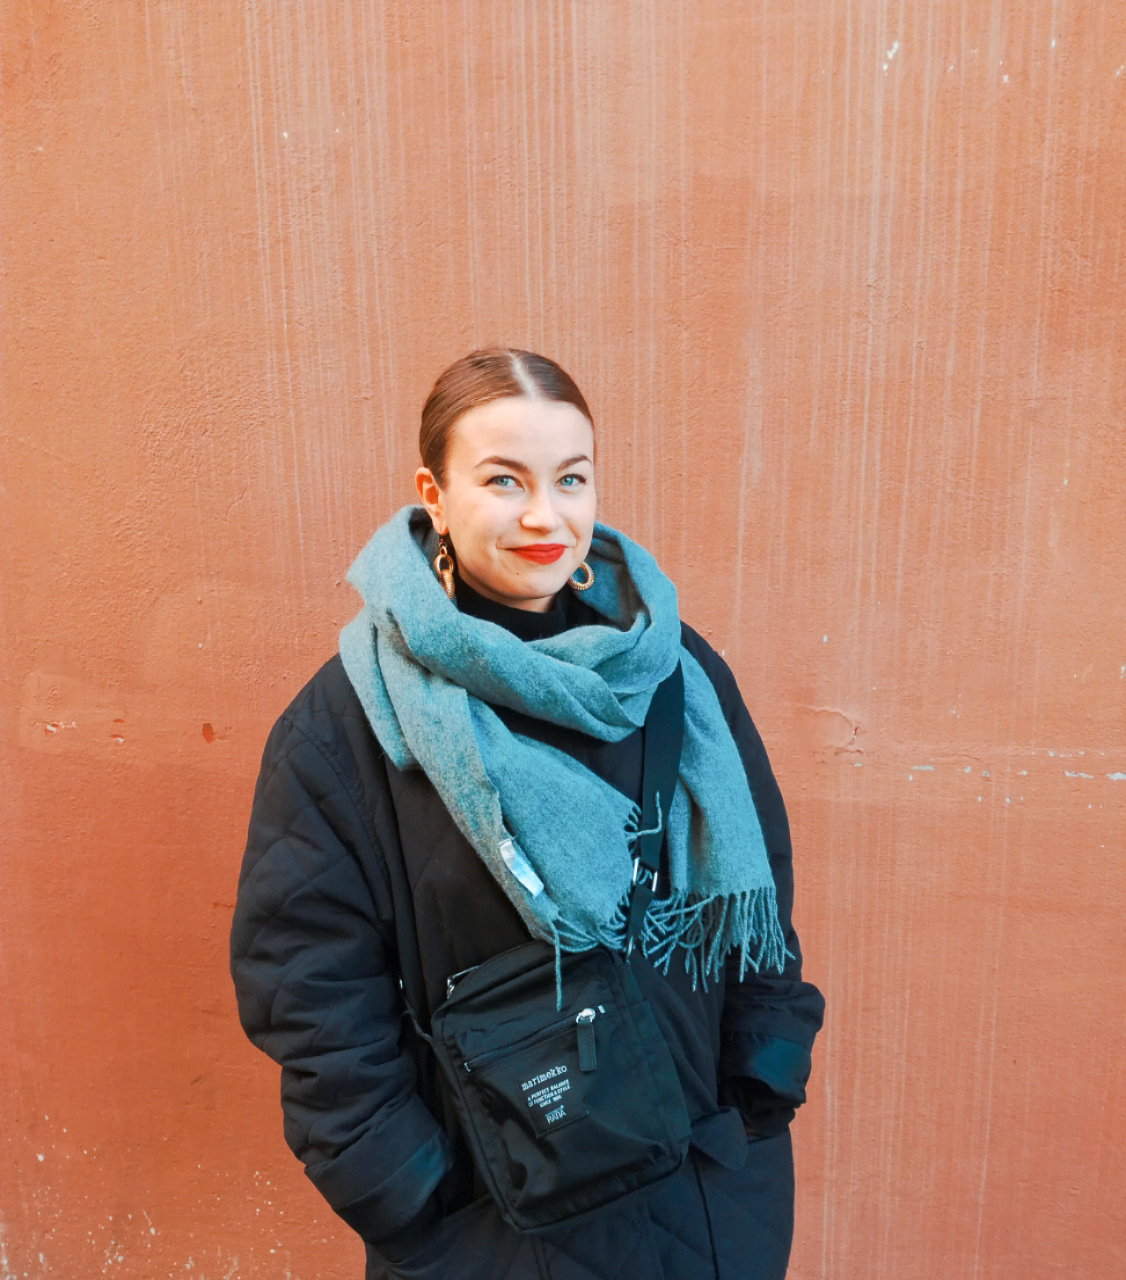 emilia voltti - an interview with the young graphic designer